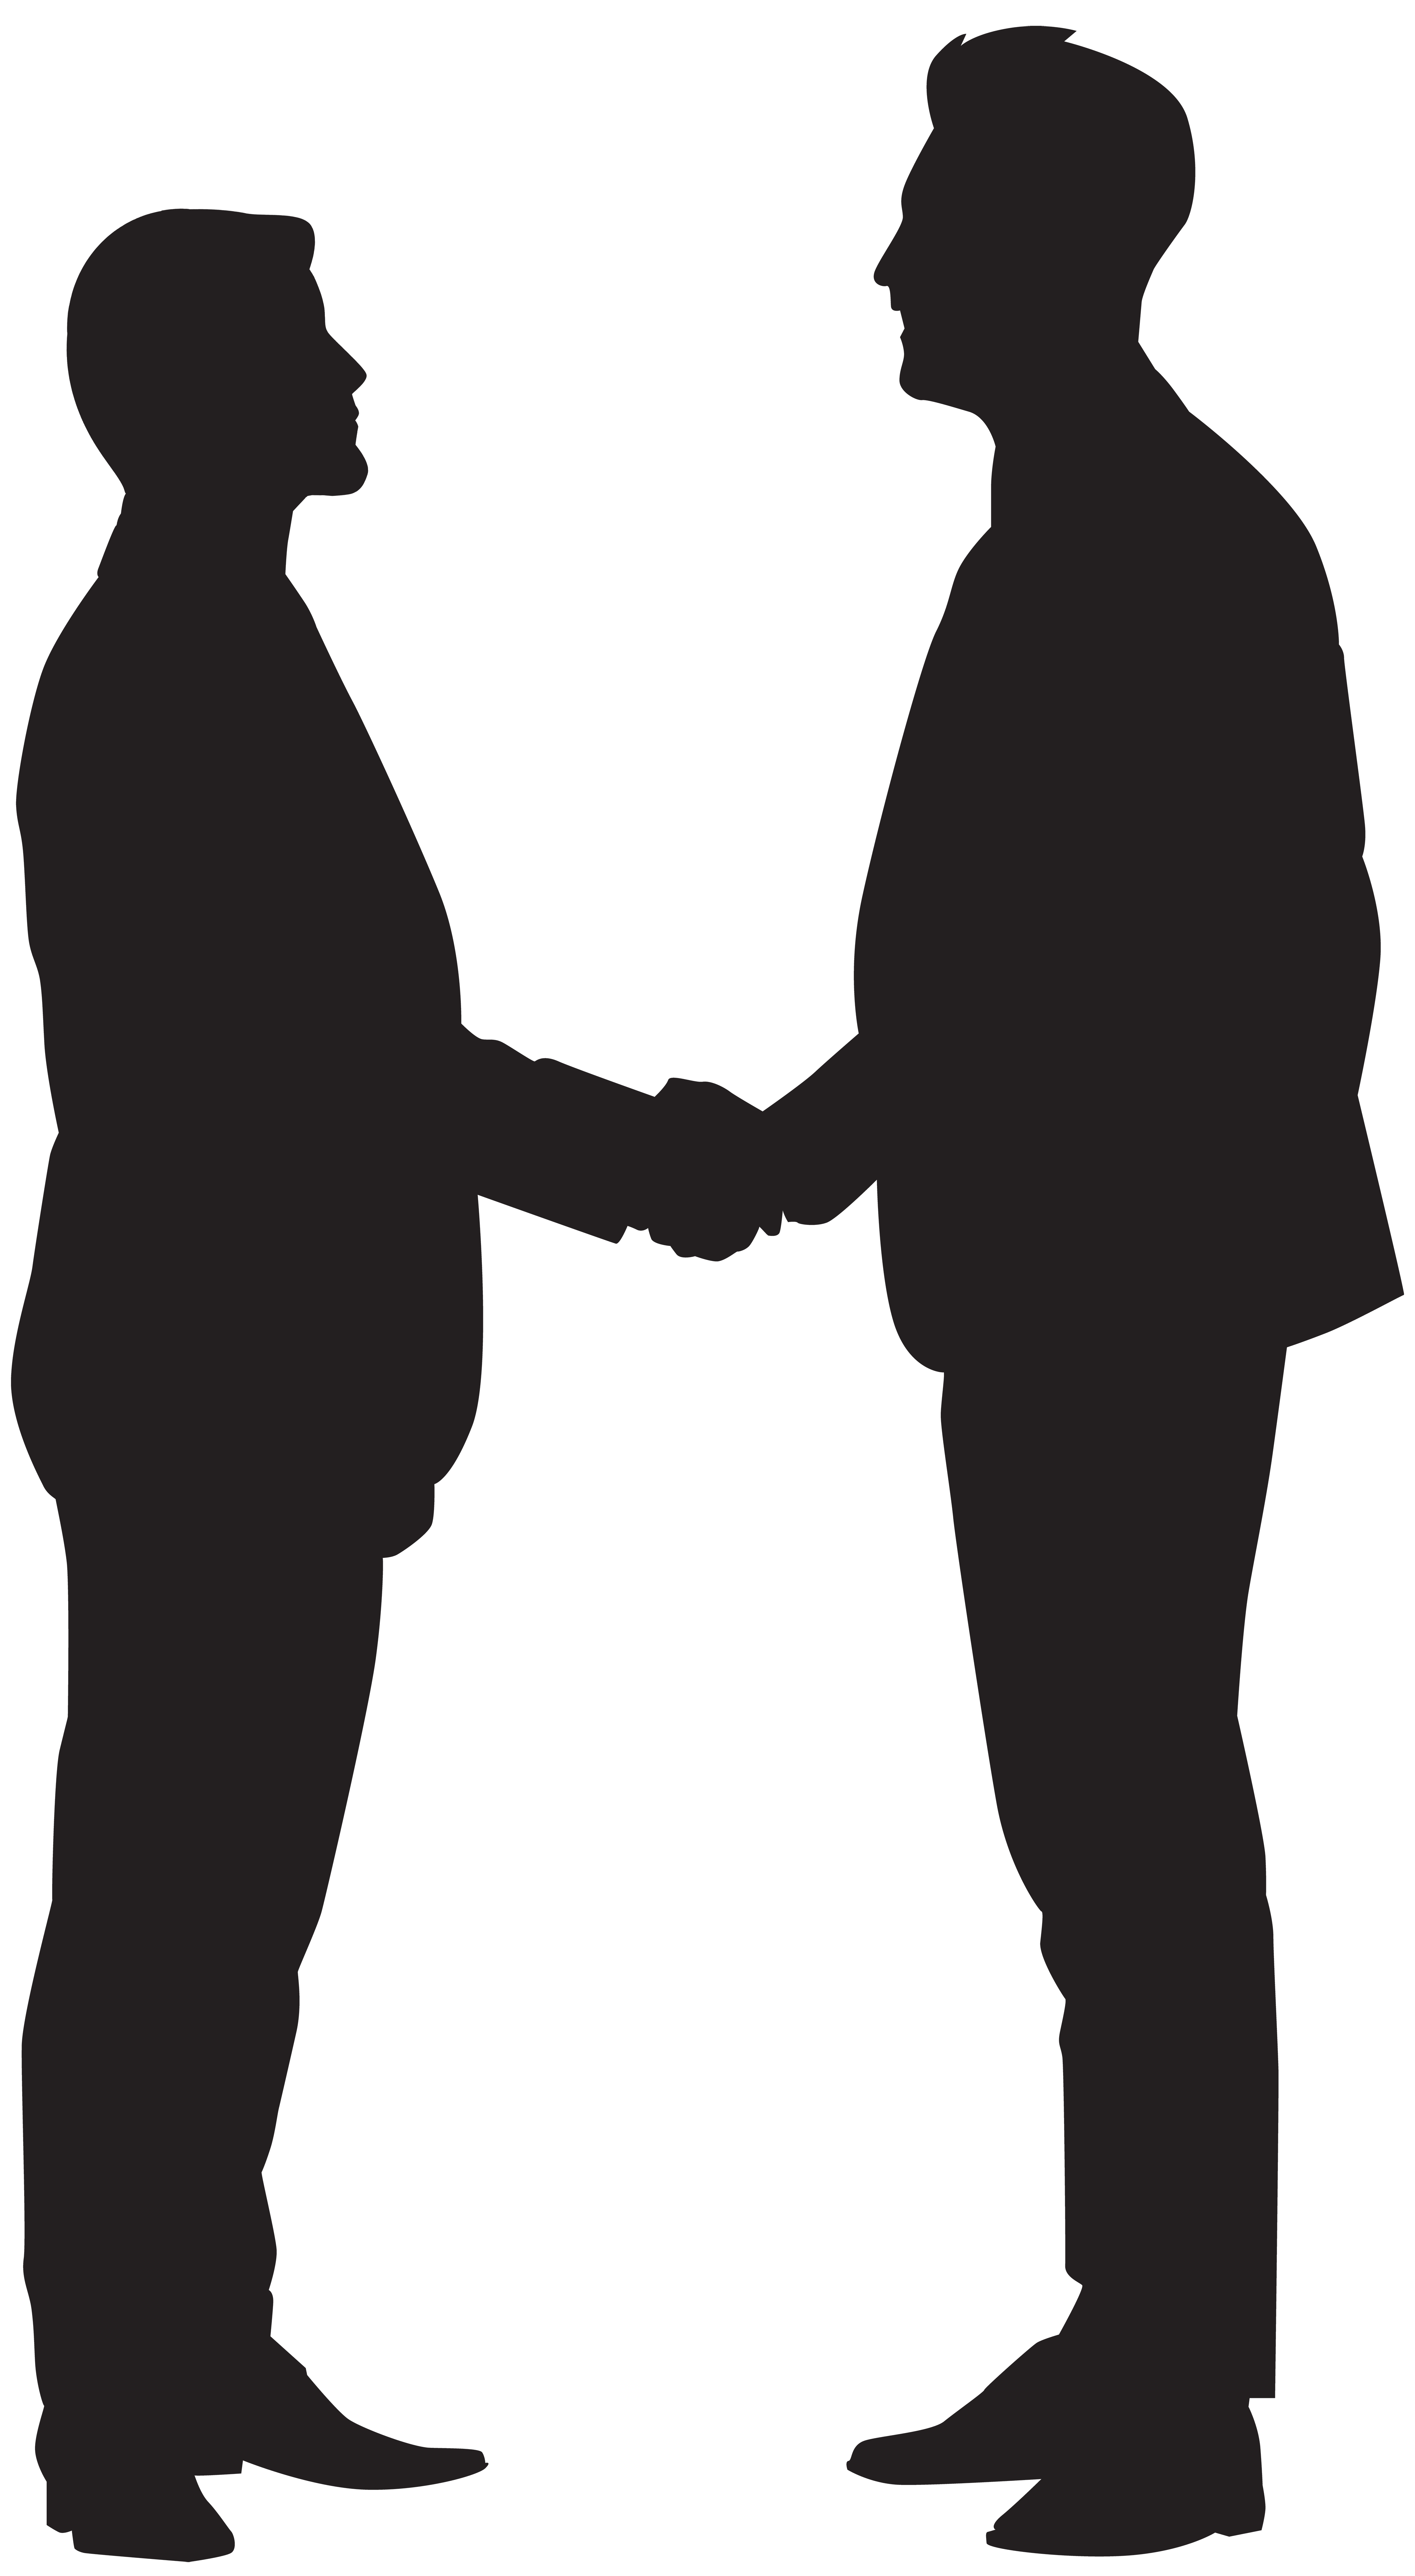 931 Shaking Hands free clipart.